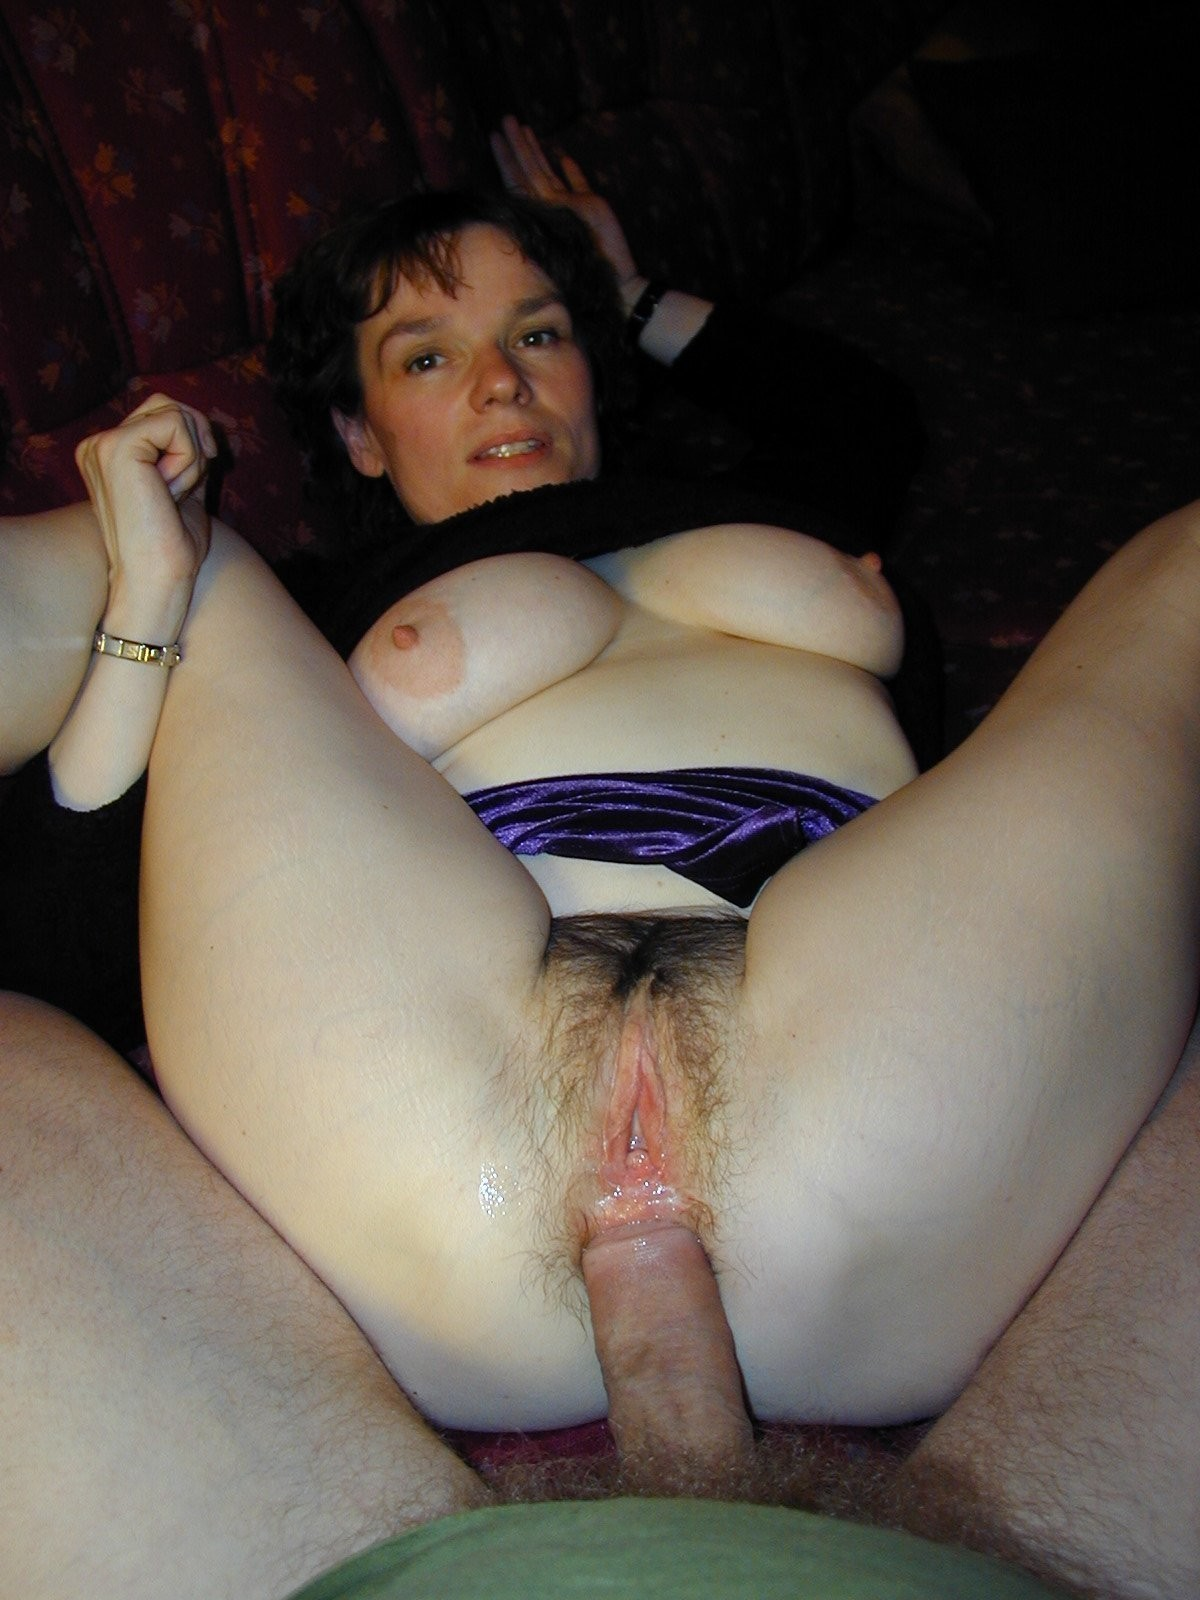 Horny amateur MILF riding a cock being homemade analized. Stunning wife with a hairy pussy gets butt banged